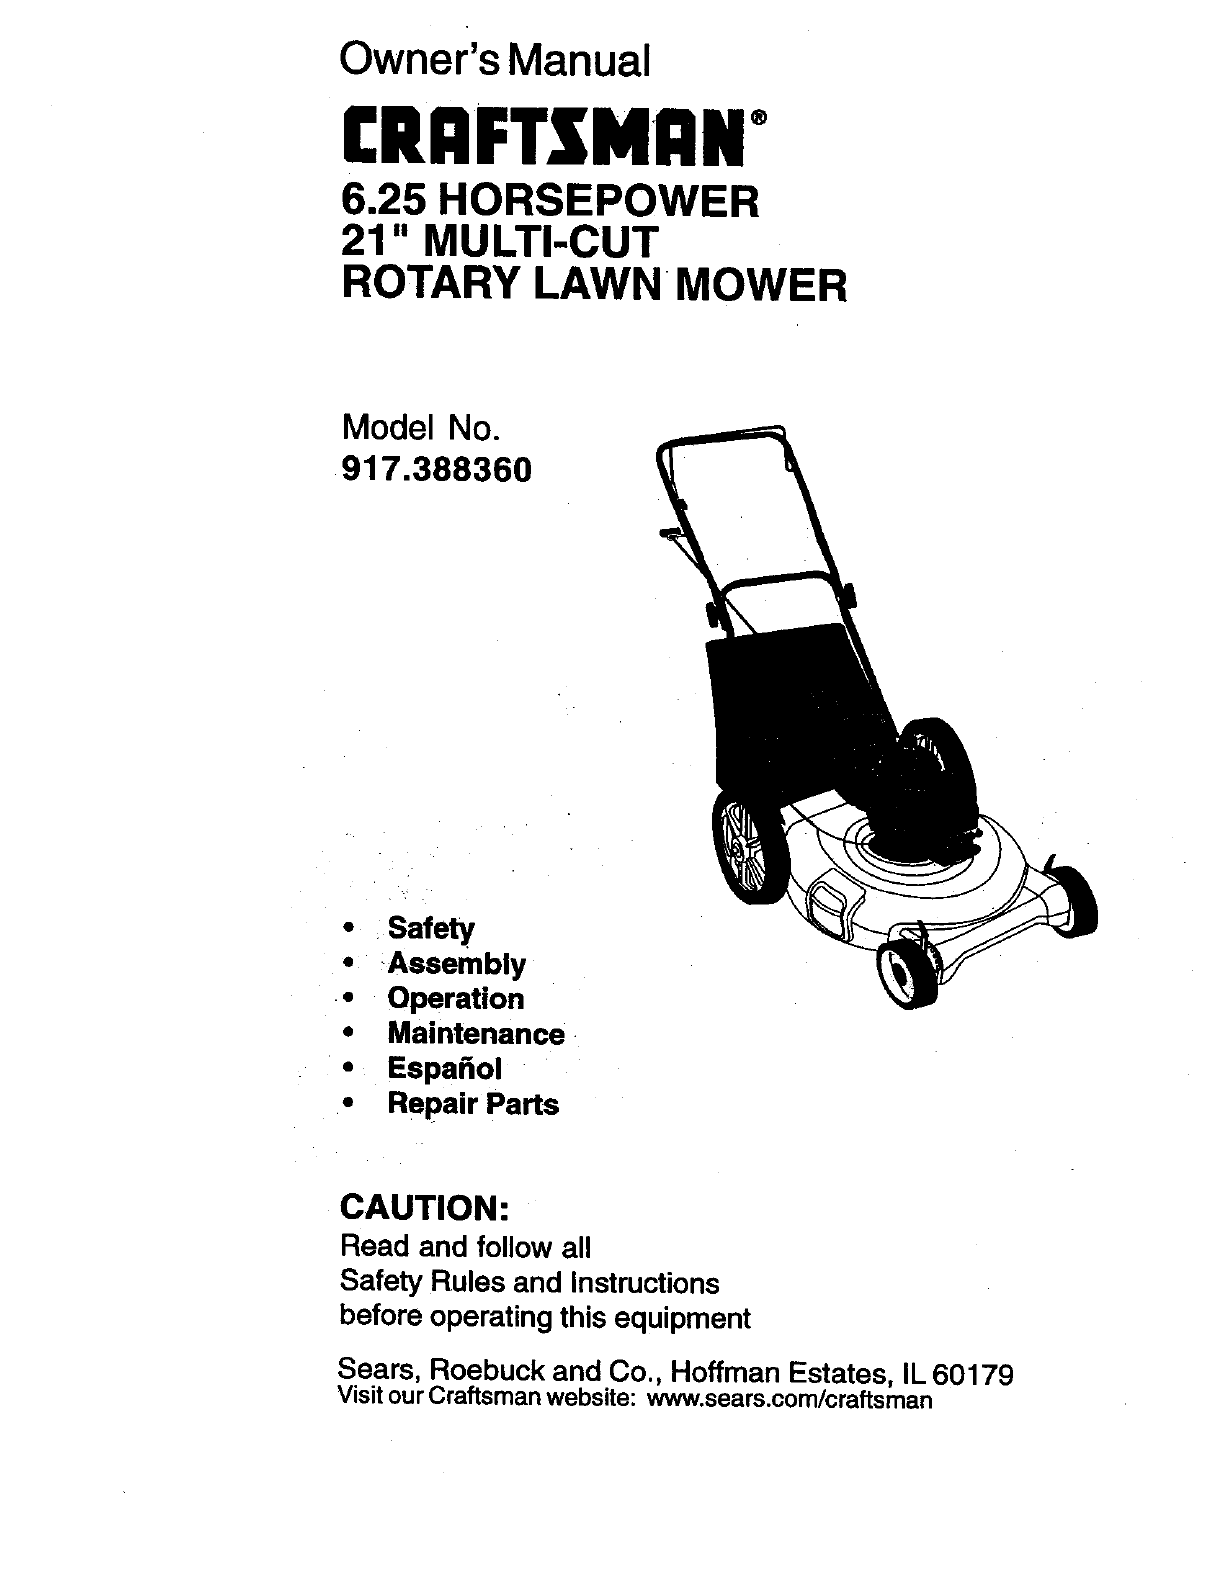 Craftsman 917388360 User Manual 6.25HP 21 ROTARY LAWN